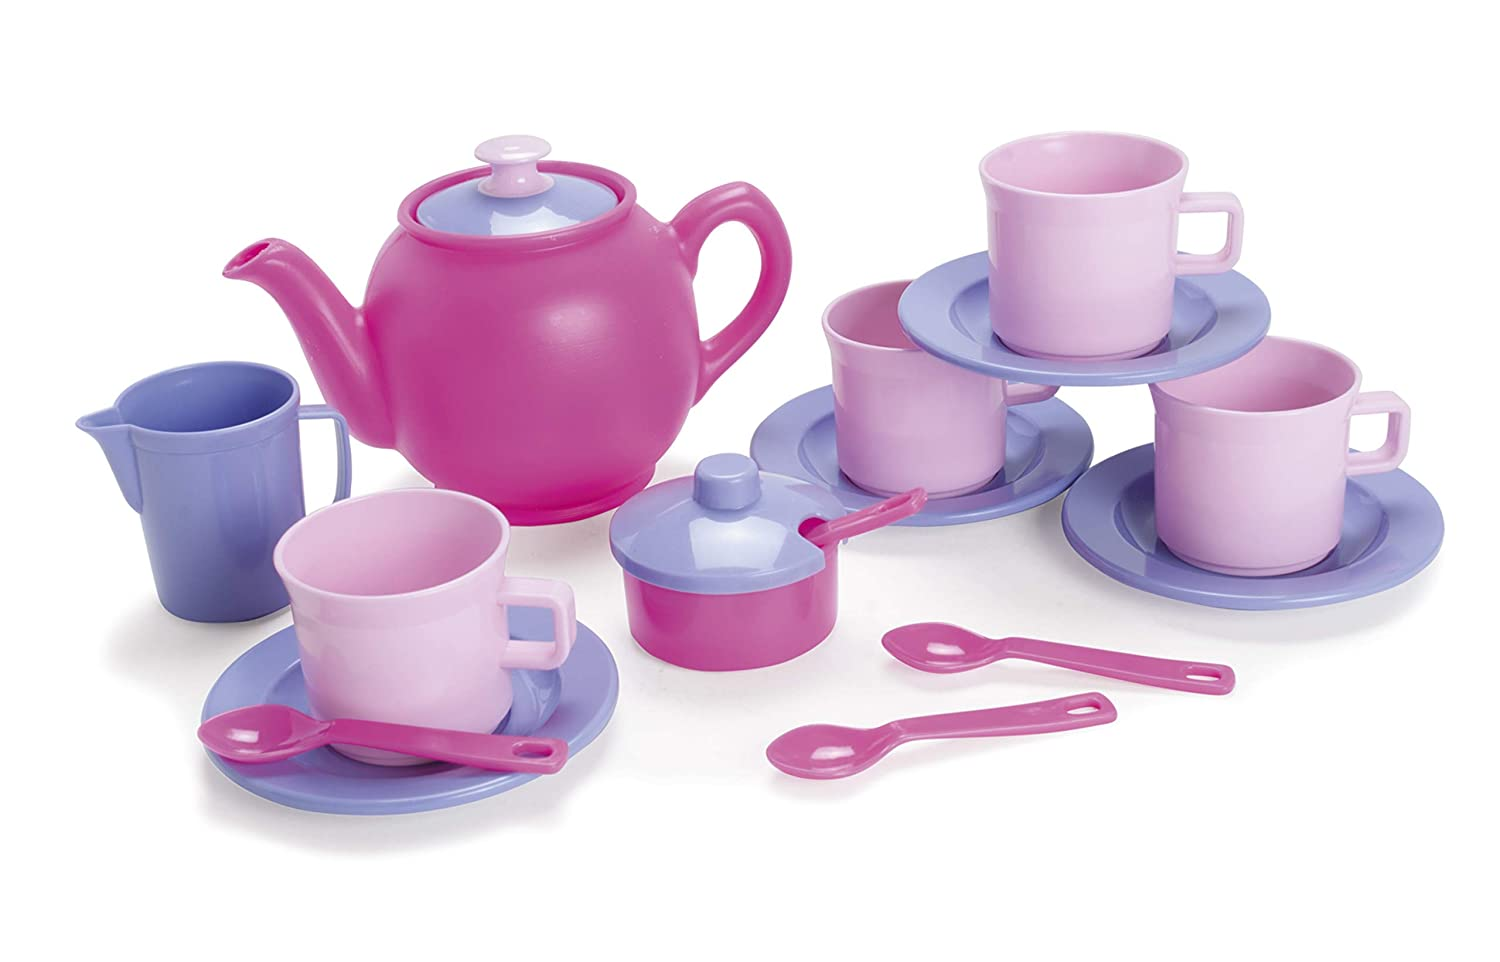 7.025 Height American Educational Products DT-4398 Tea Set Activity Set 7.41 Length 5.46 Wide